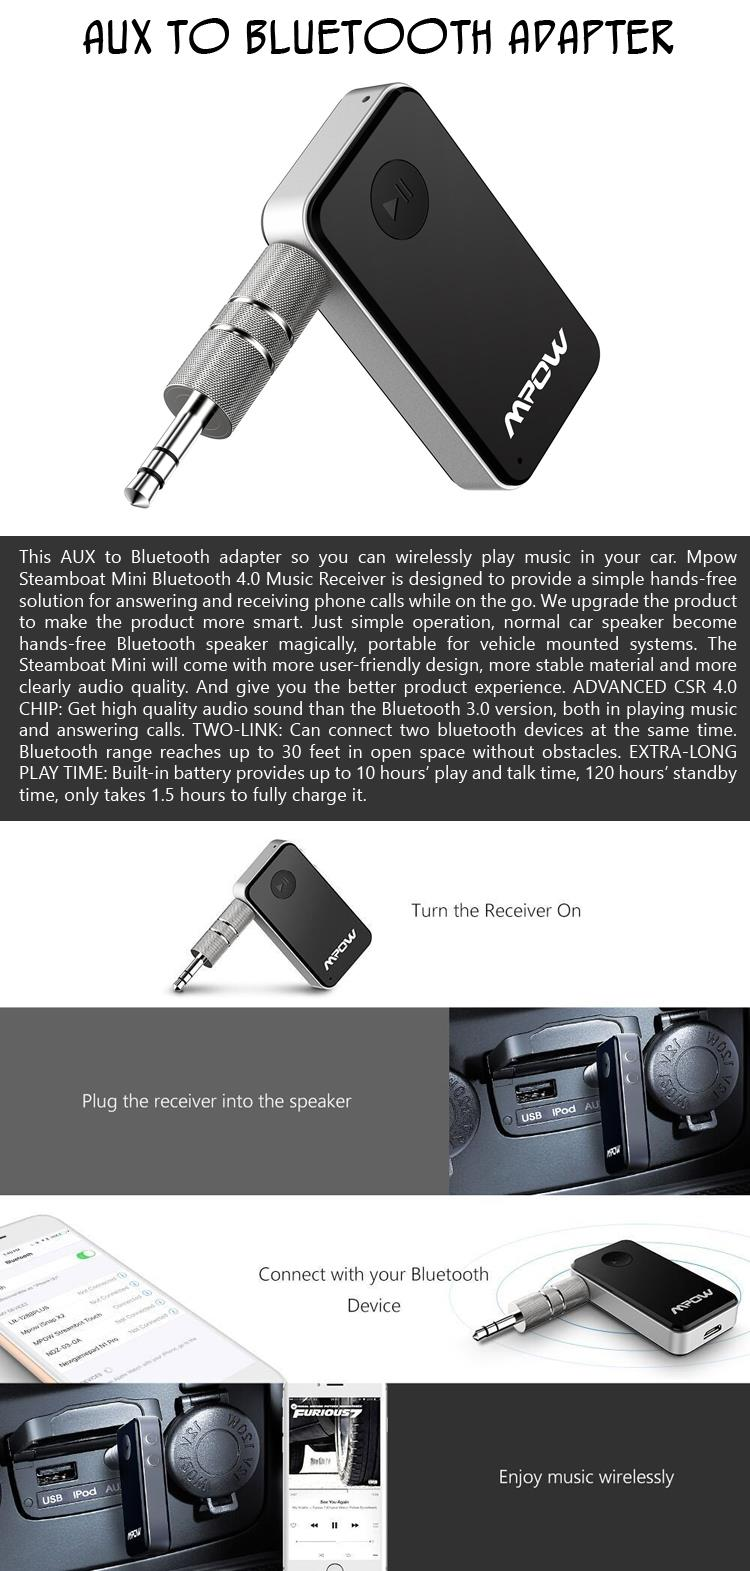 aux-to-bluetooth-adapter